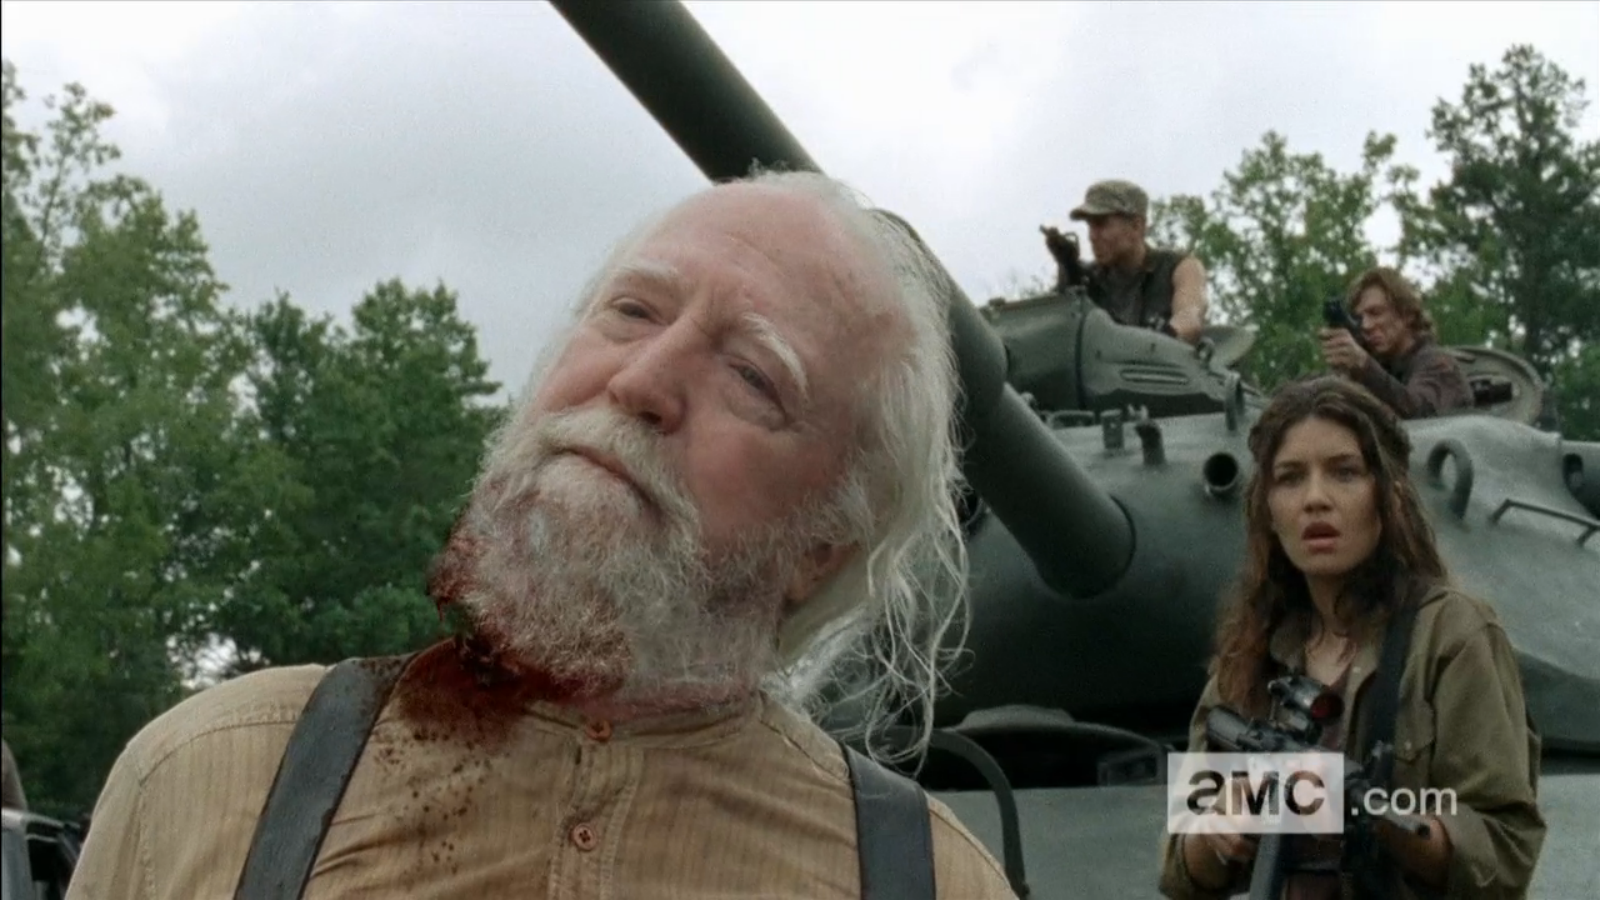 http://img3.wikia.nocookie.net/__cb20131202061312/walkingdead/images/9/94/TFG_Hershel_Neck_Slice.png